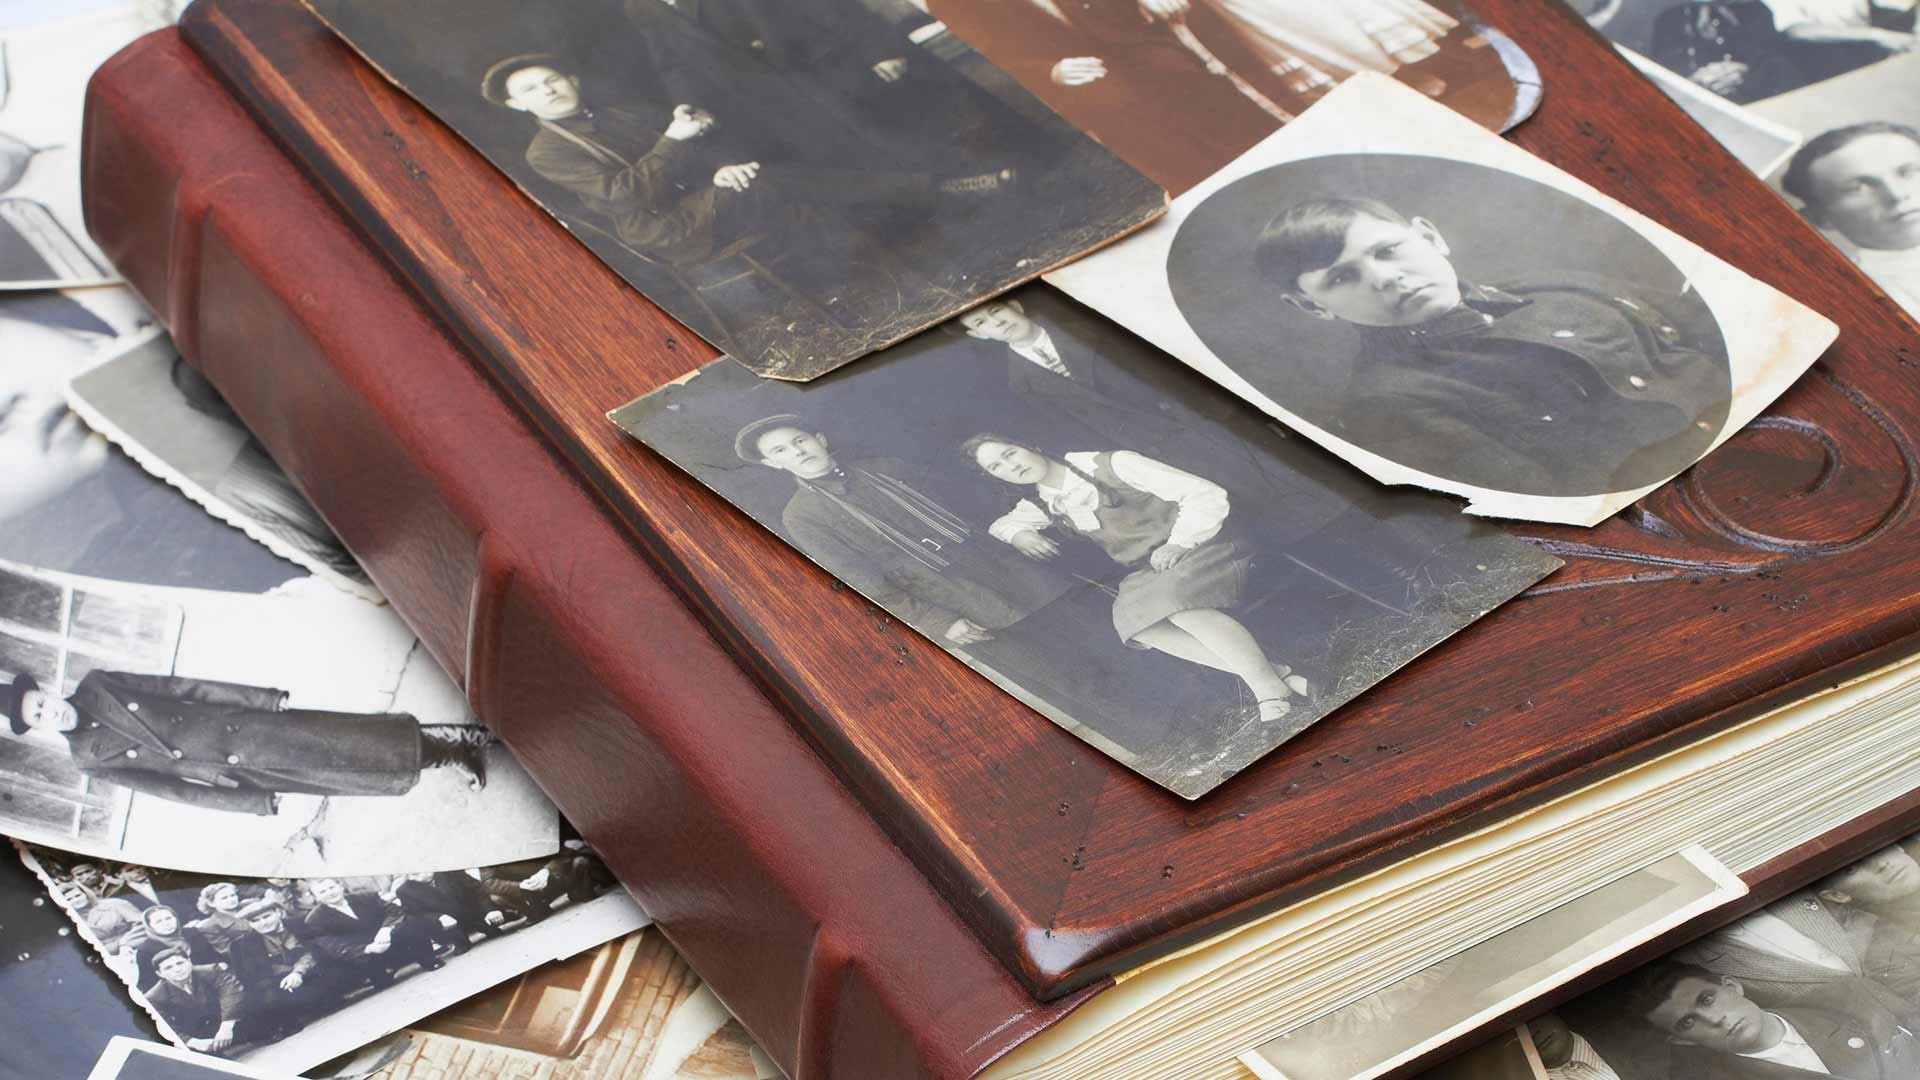 An old family photo album with old photos sitting atop it.